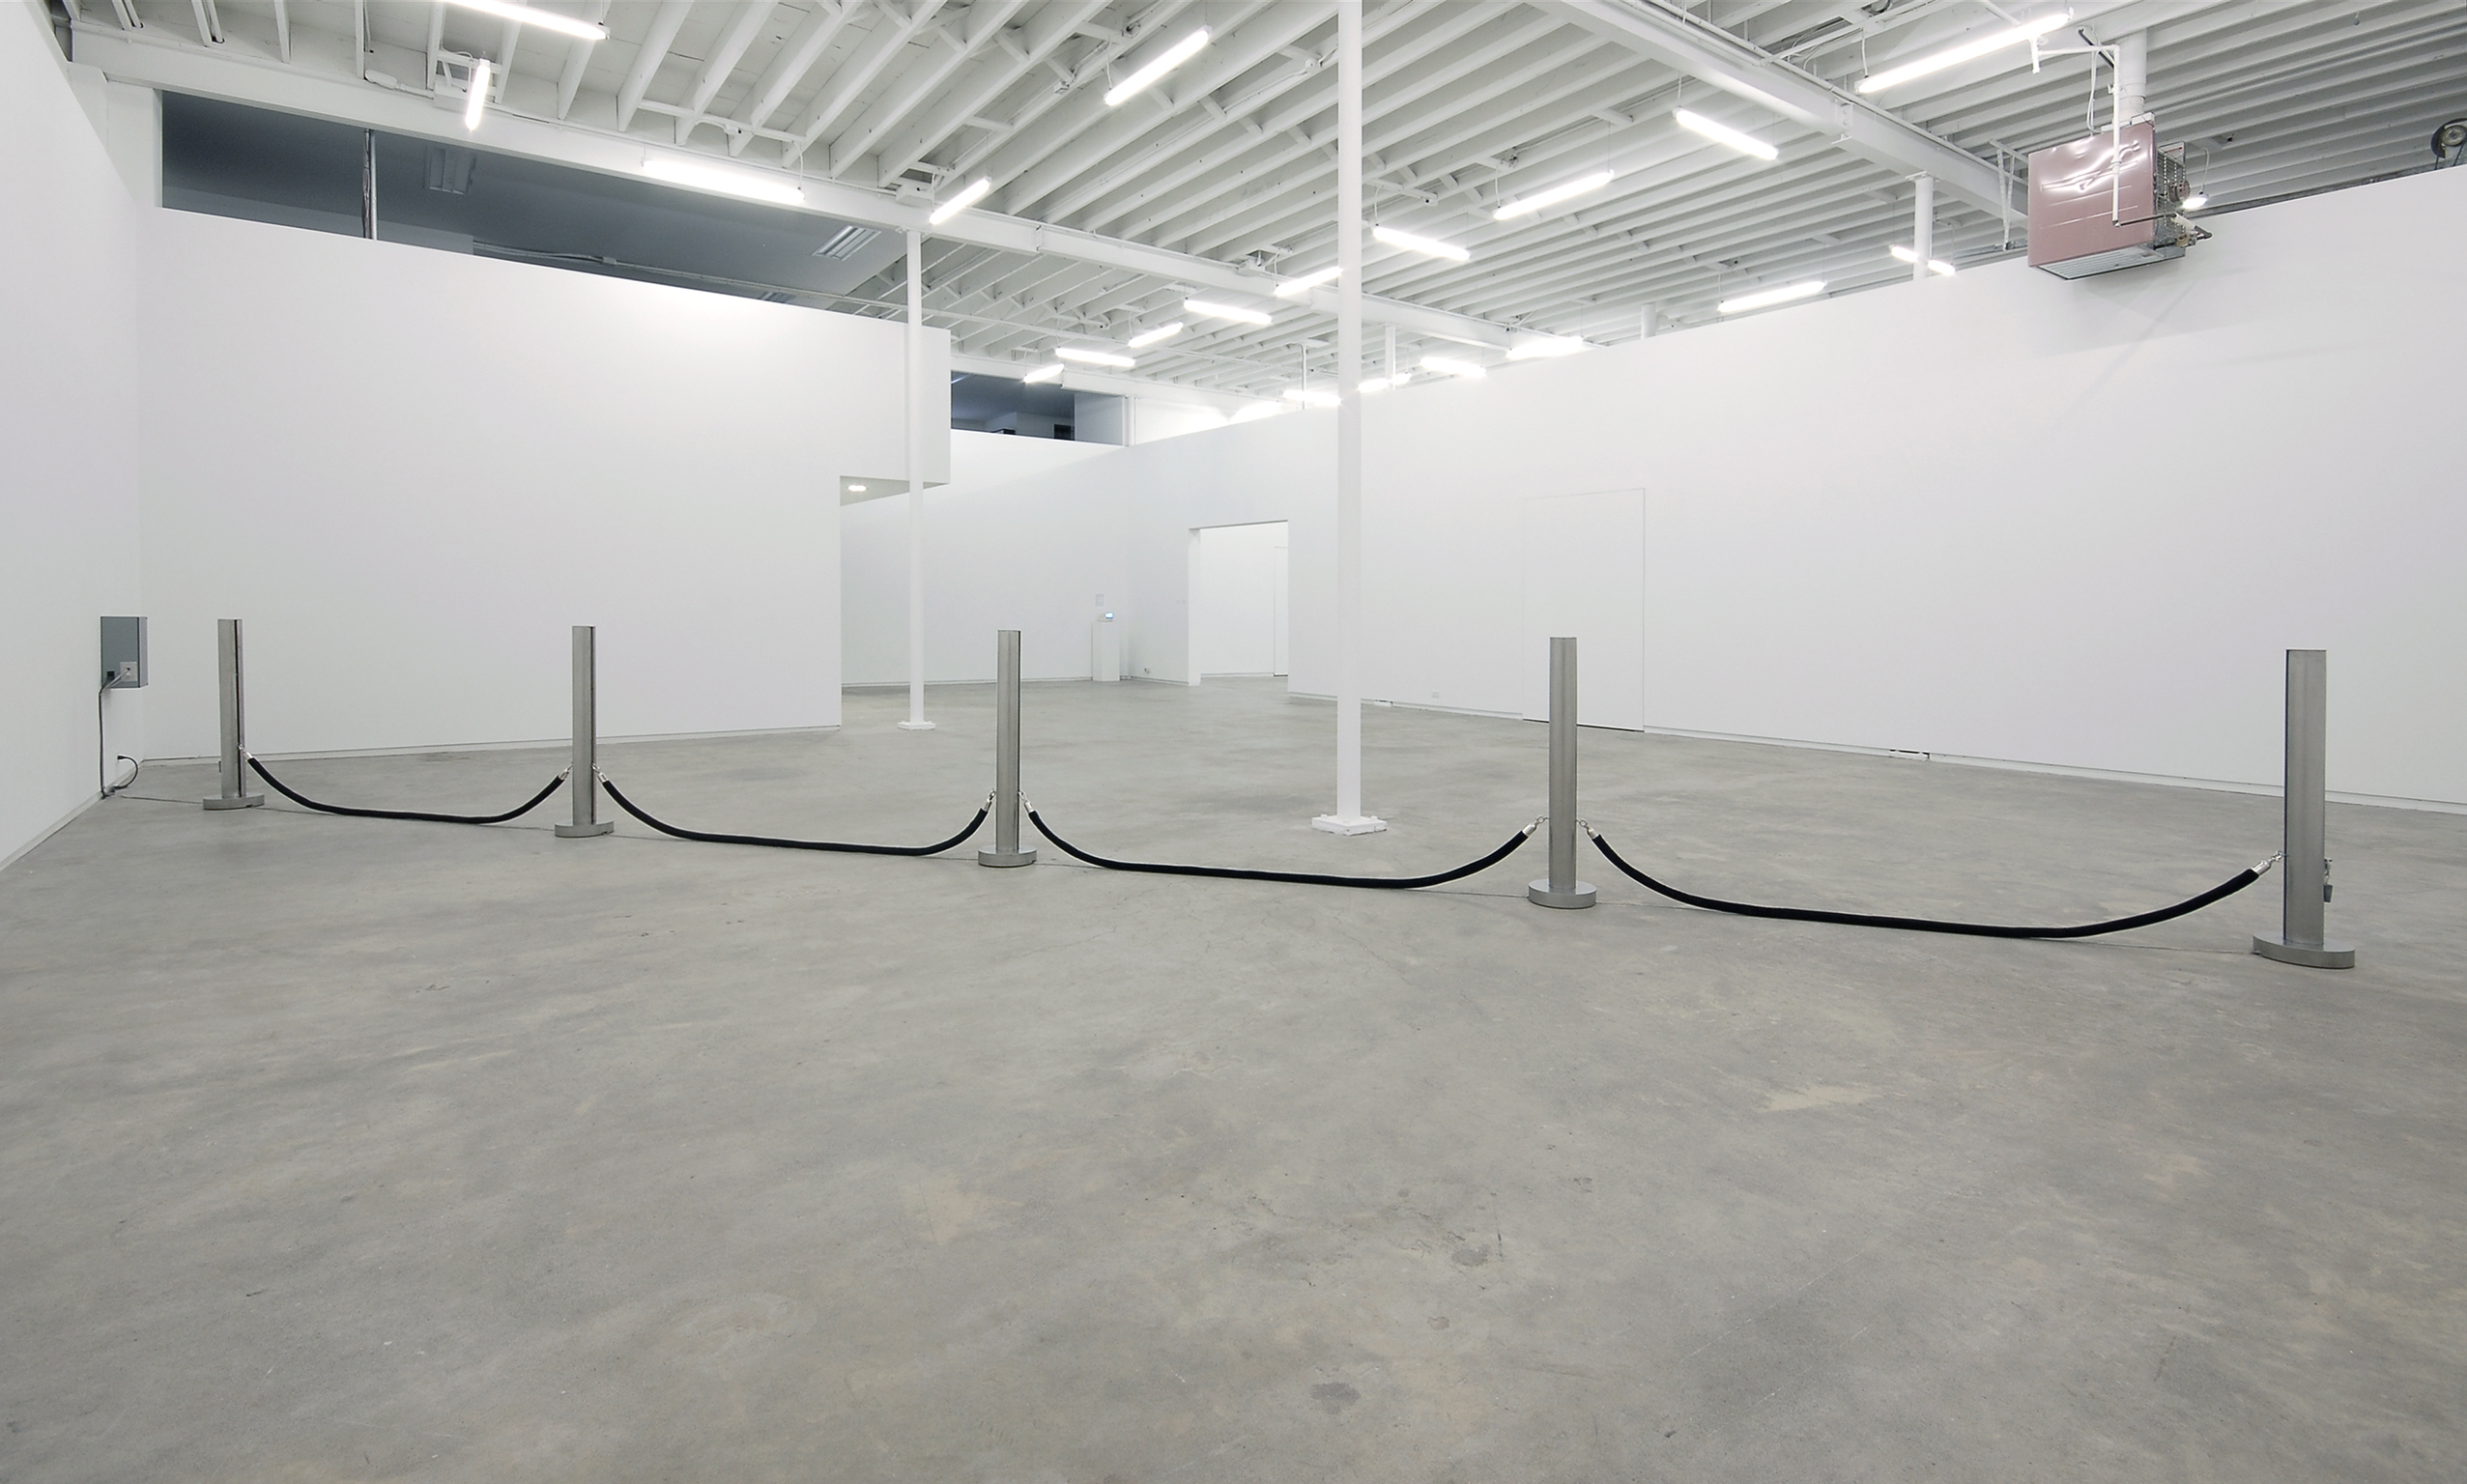 ​Germaine Koh, Fair-Weather Forces (Water Level), 2008, mixed media, dimensions variable by